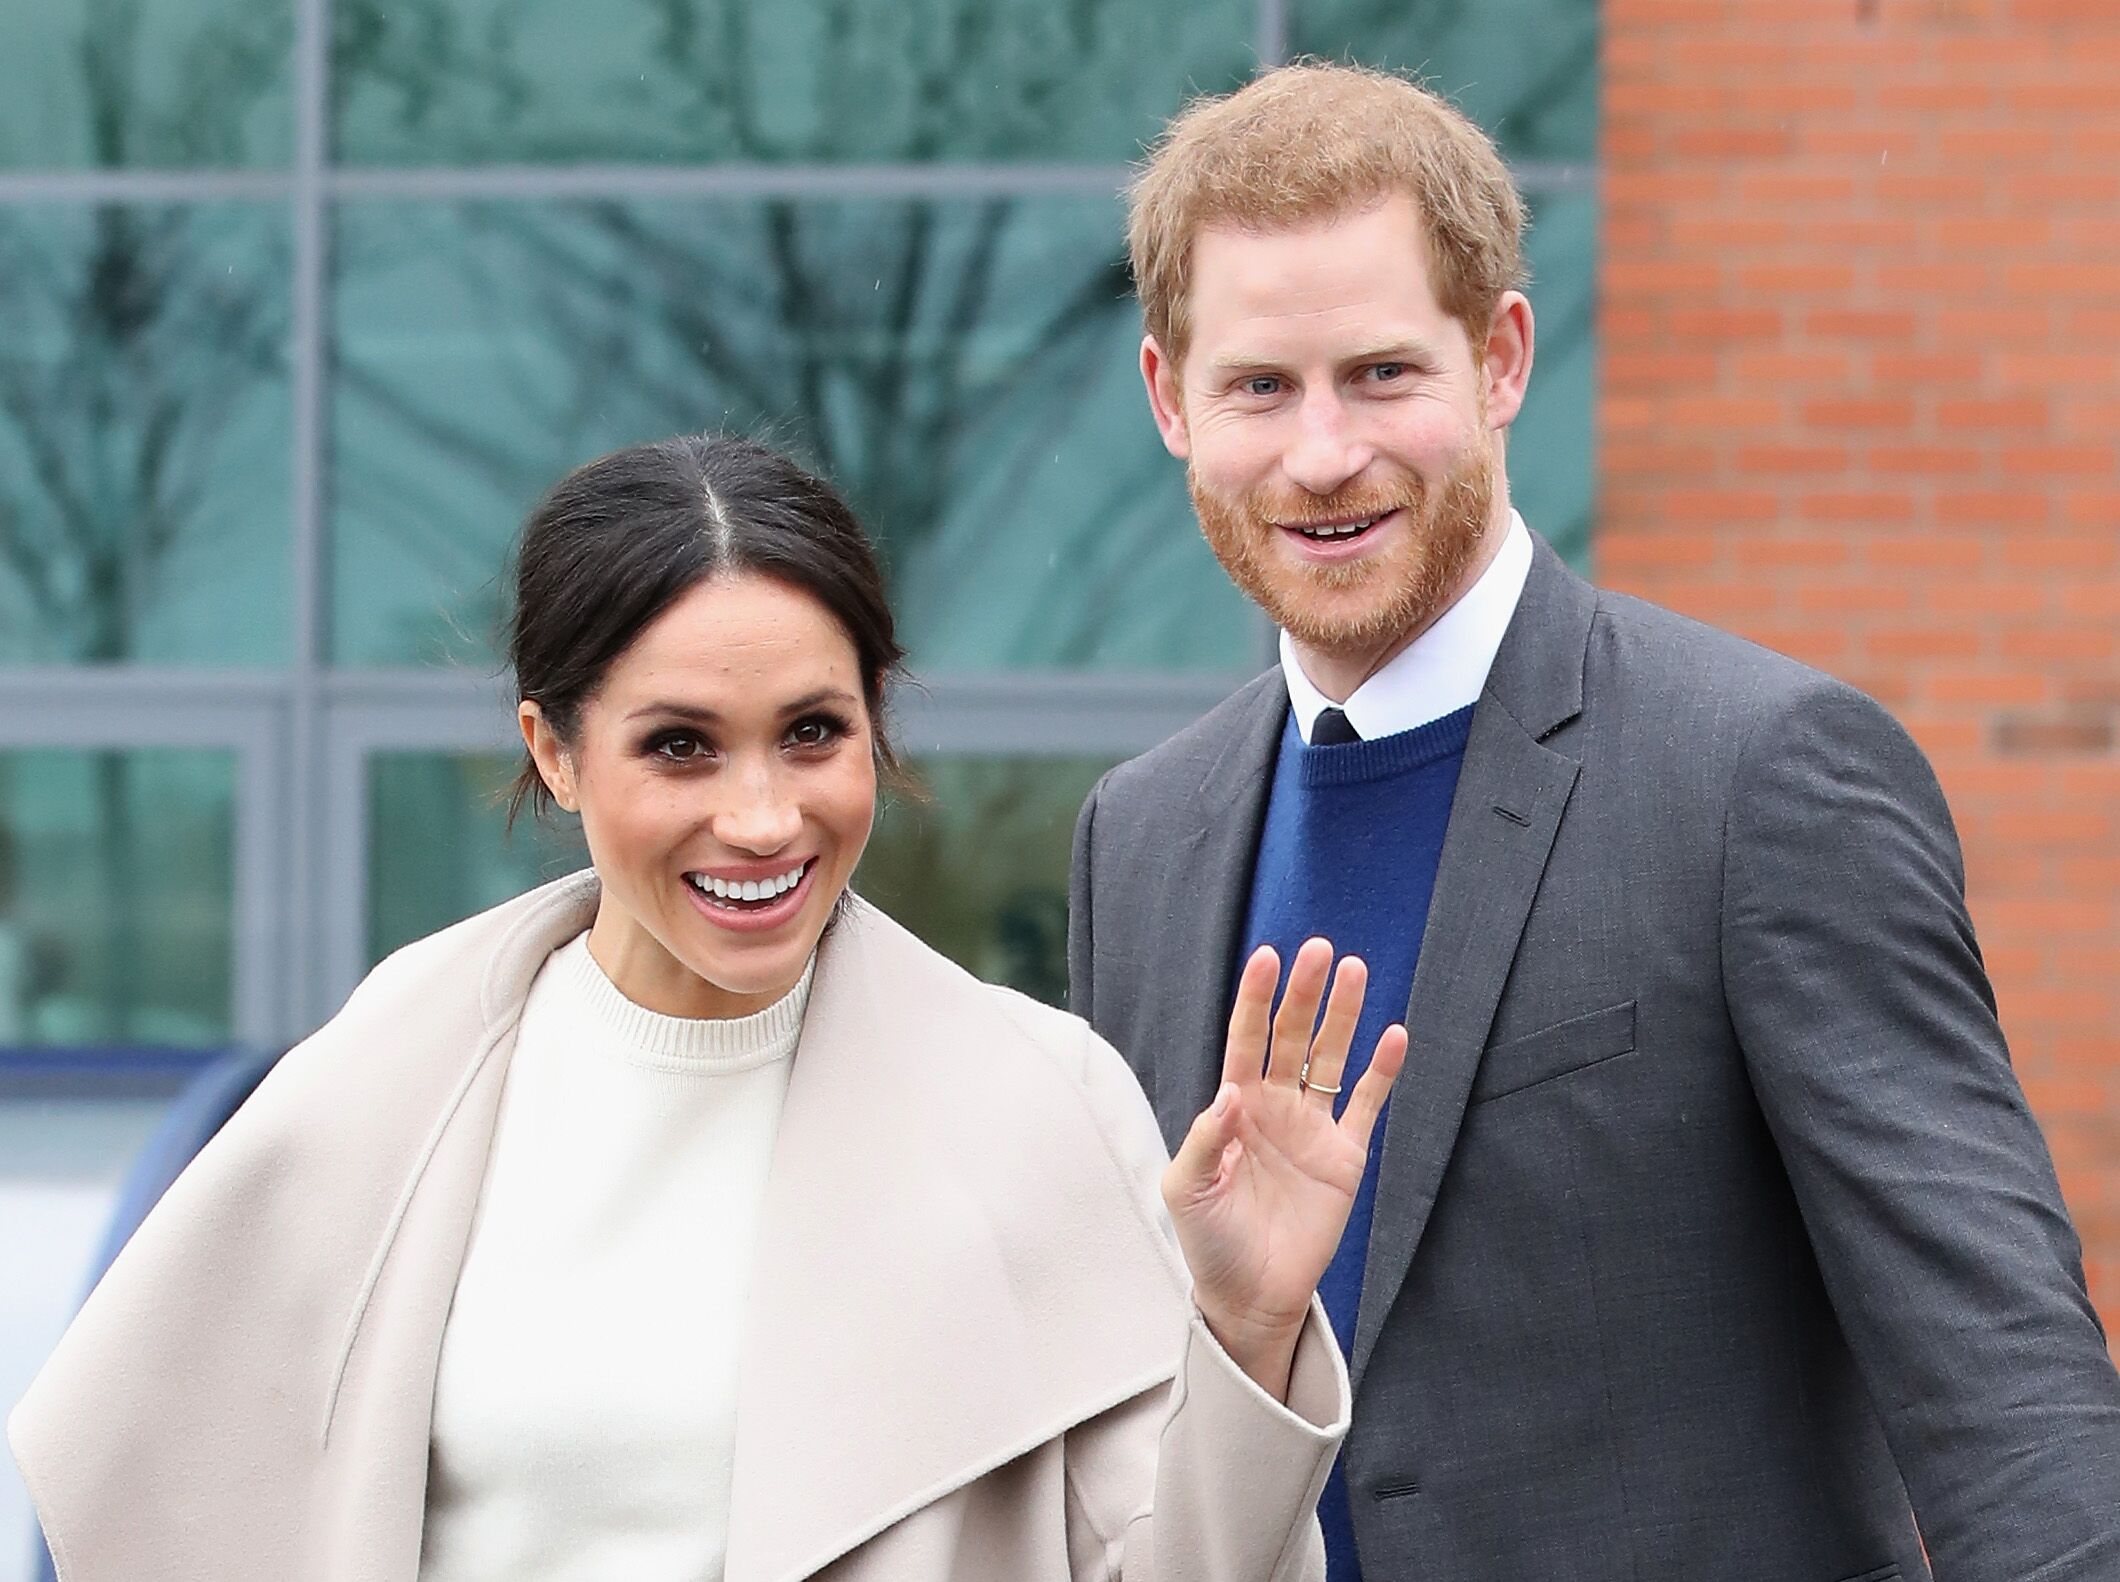 Prince Harry and Meghan Markle depart from Catalyst Inc, Northern Ireland's next generation science park on March 23, 2018   Photo: Getty Images